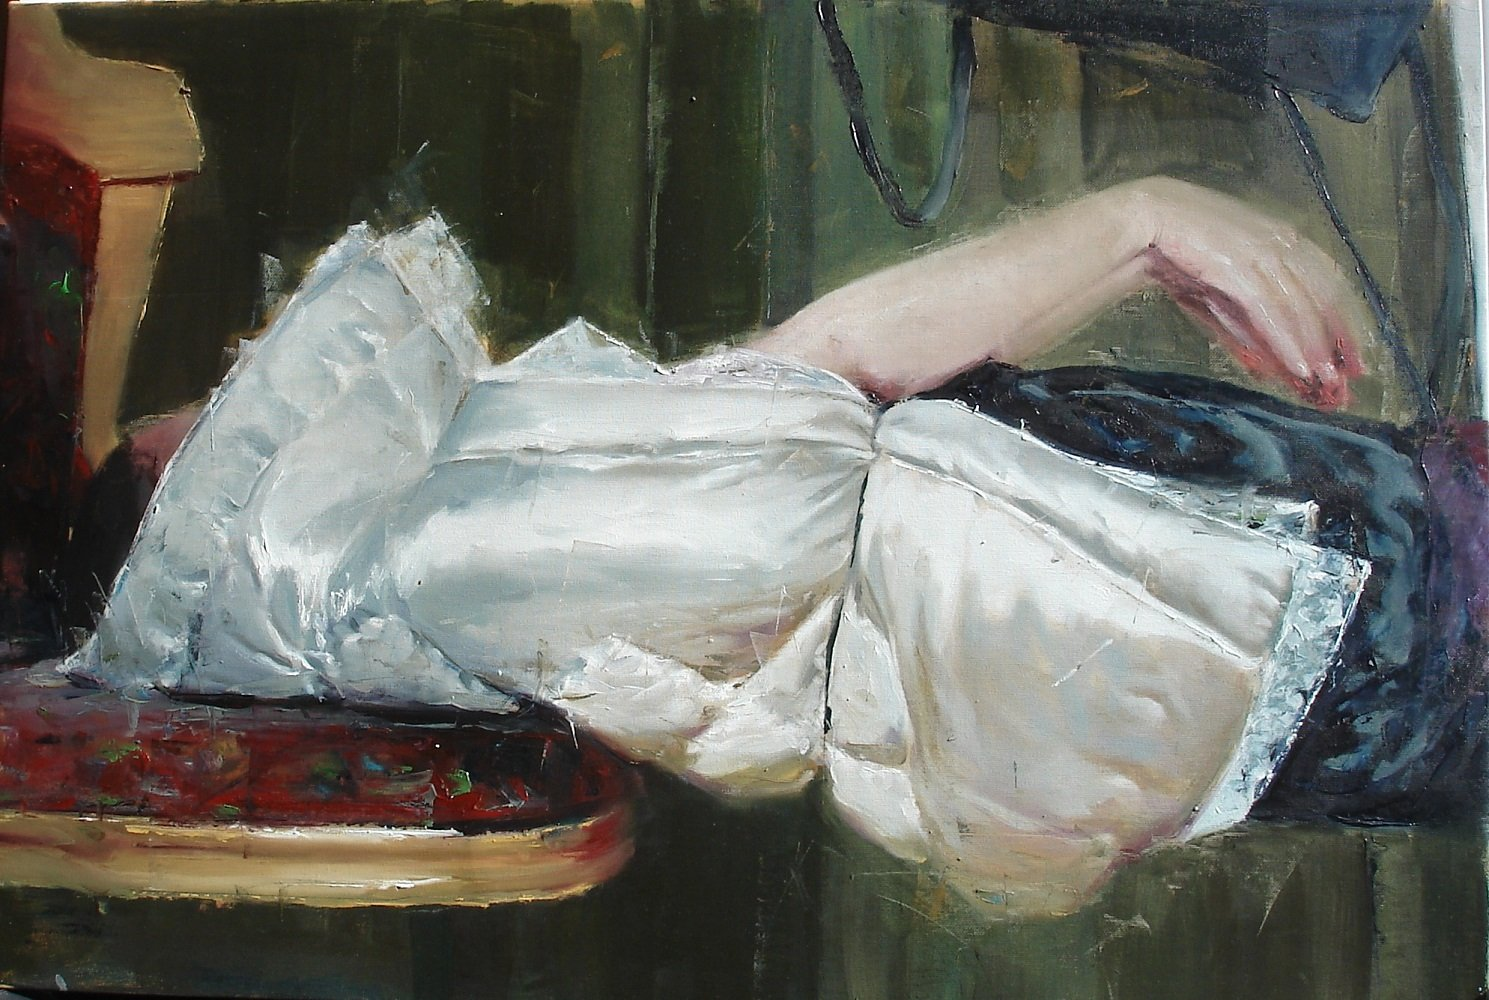 large_Teodora_Axente__Becoming_2__2012__Oil_on_canvas__20.5_x_30.3_in__52_x_77_cm_